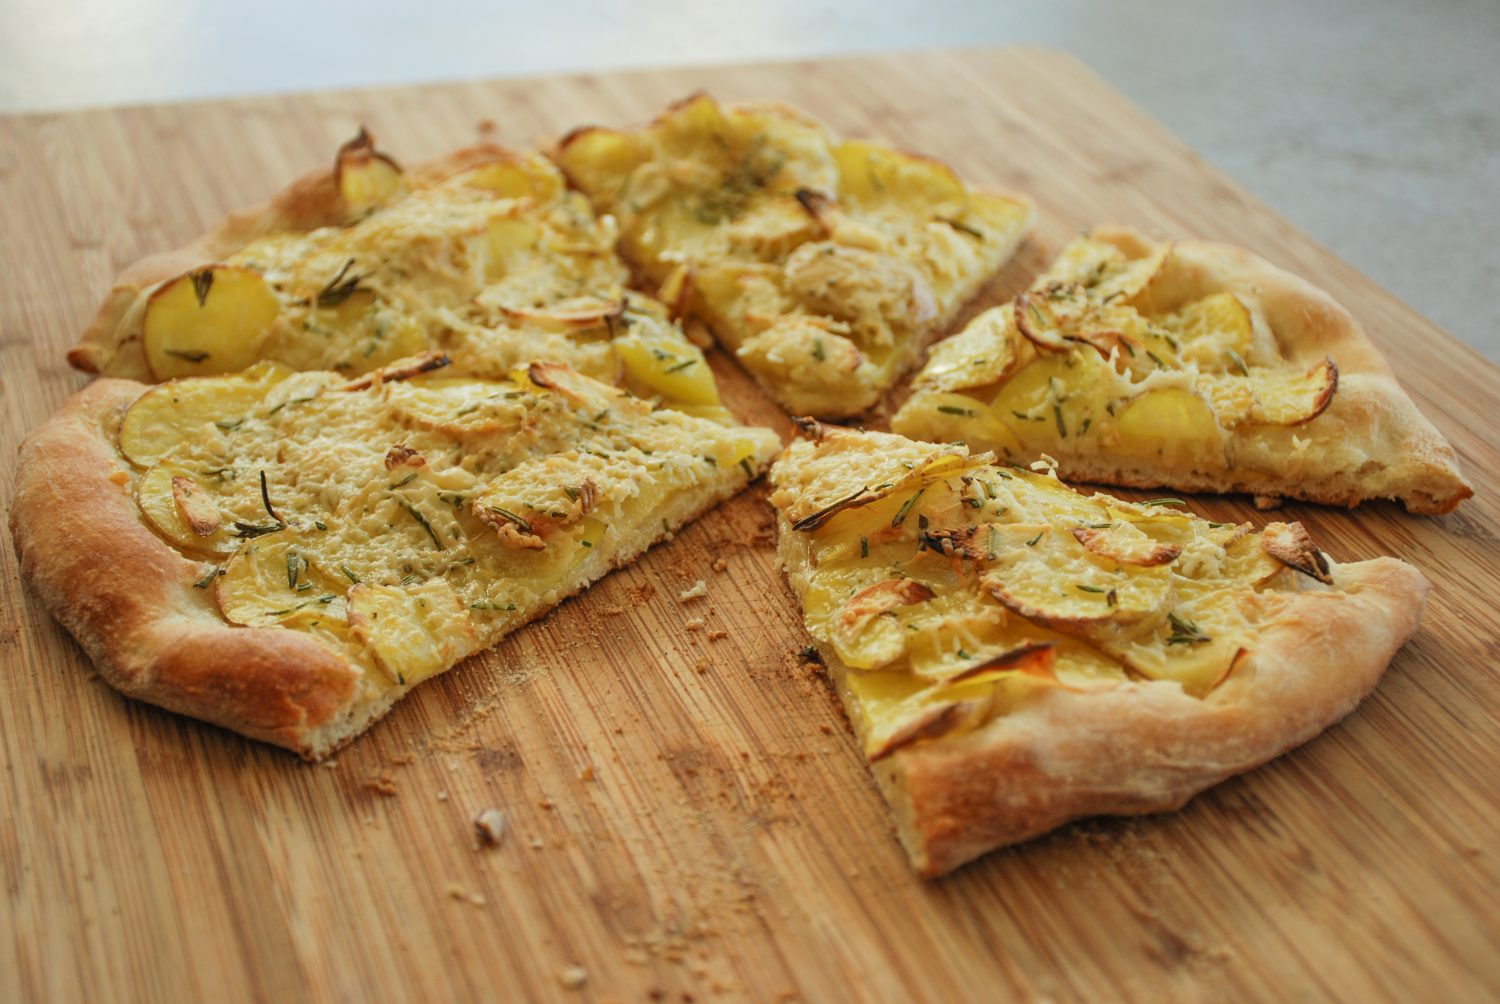 Potato, Rosemary & Roasted Garlic Pizza